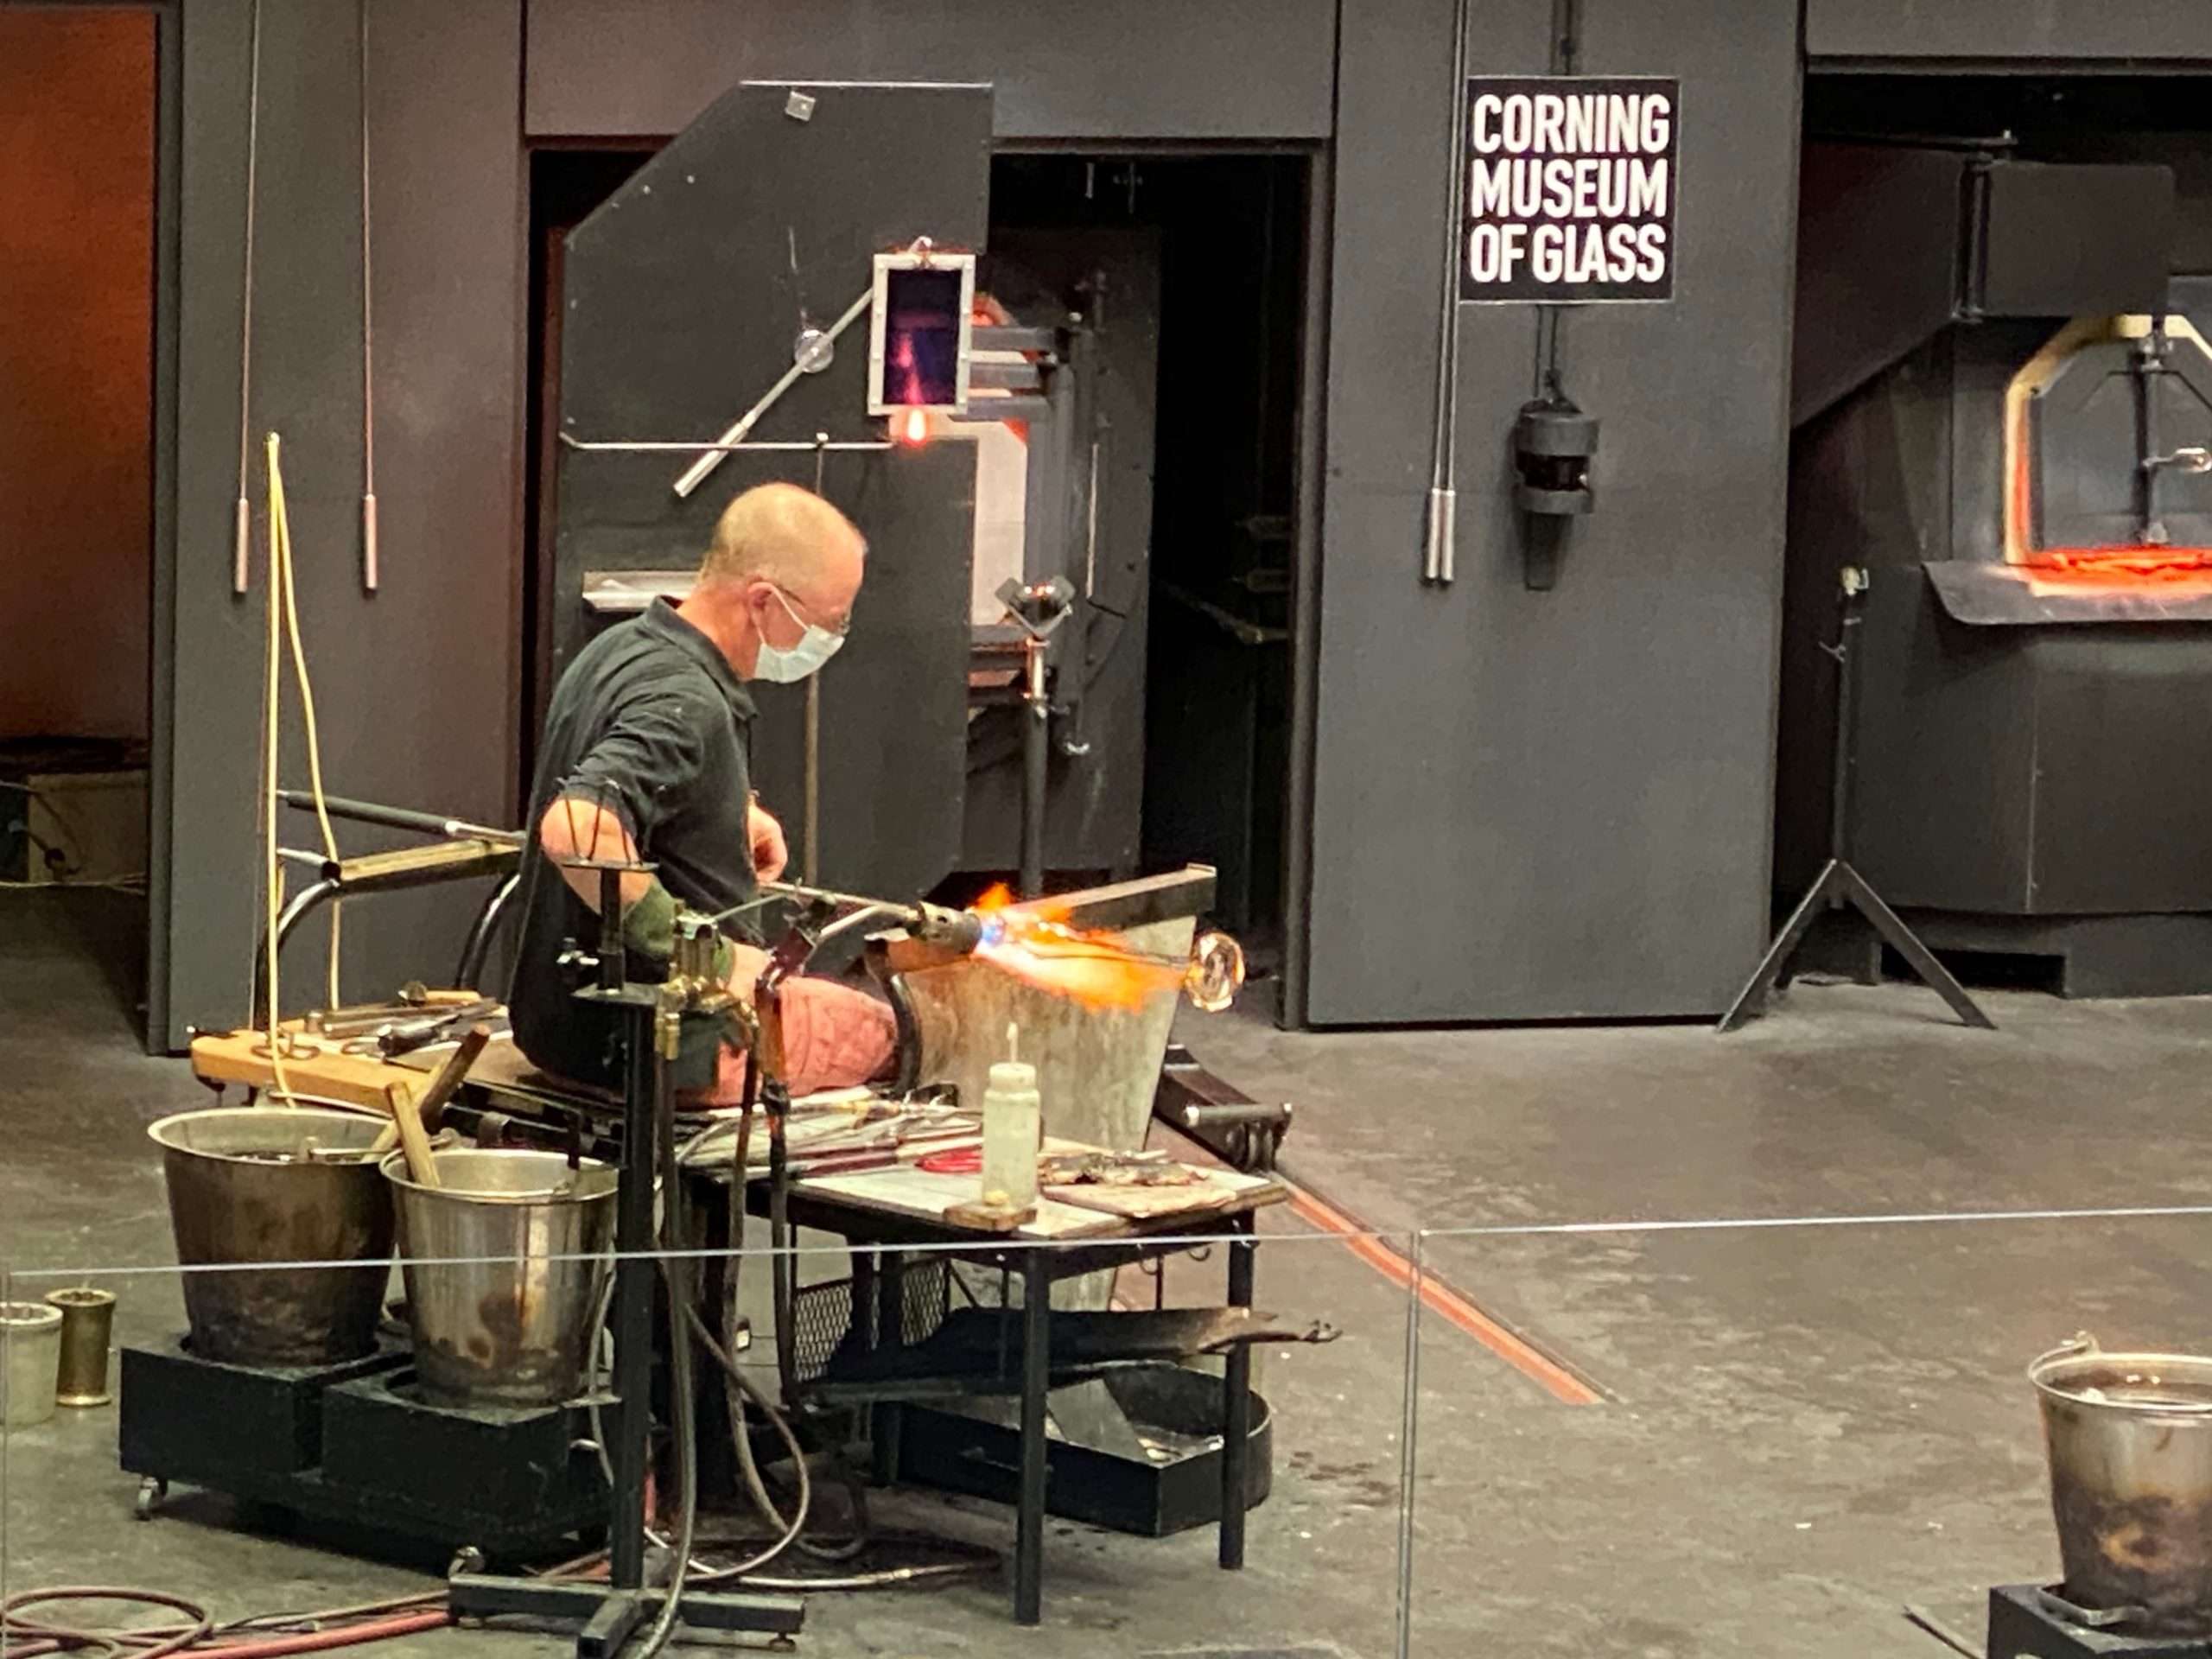 Glassblowing demonstration at the Corning Museum of Glass near Watkins Glen, NY